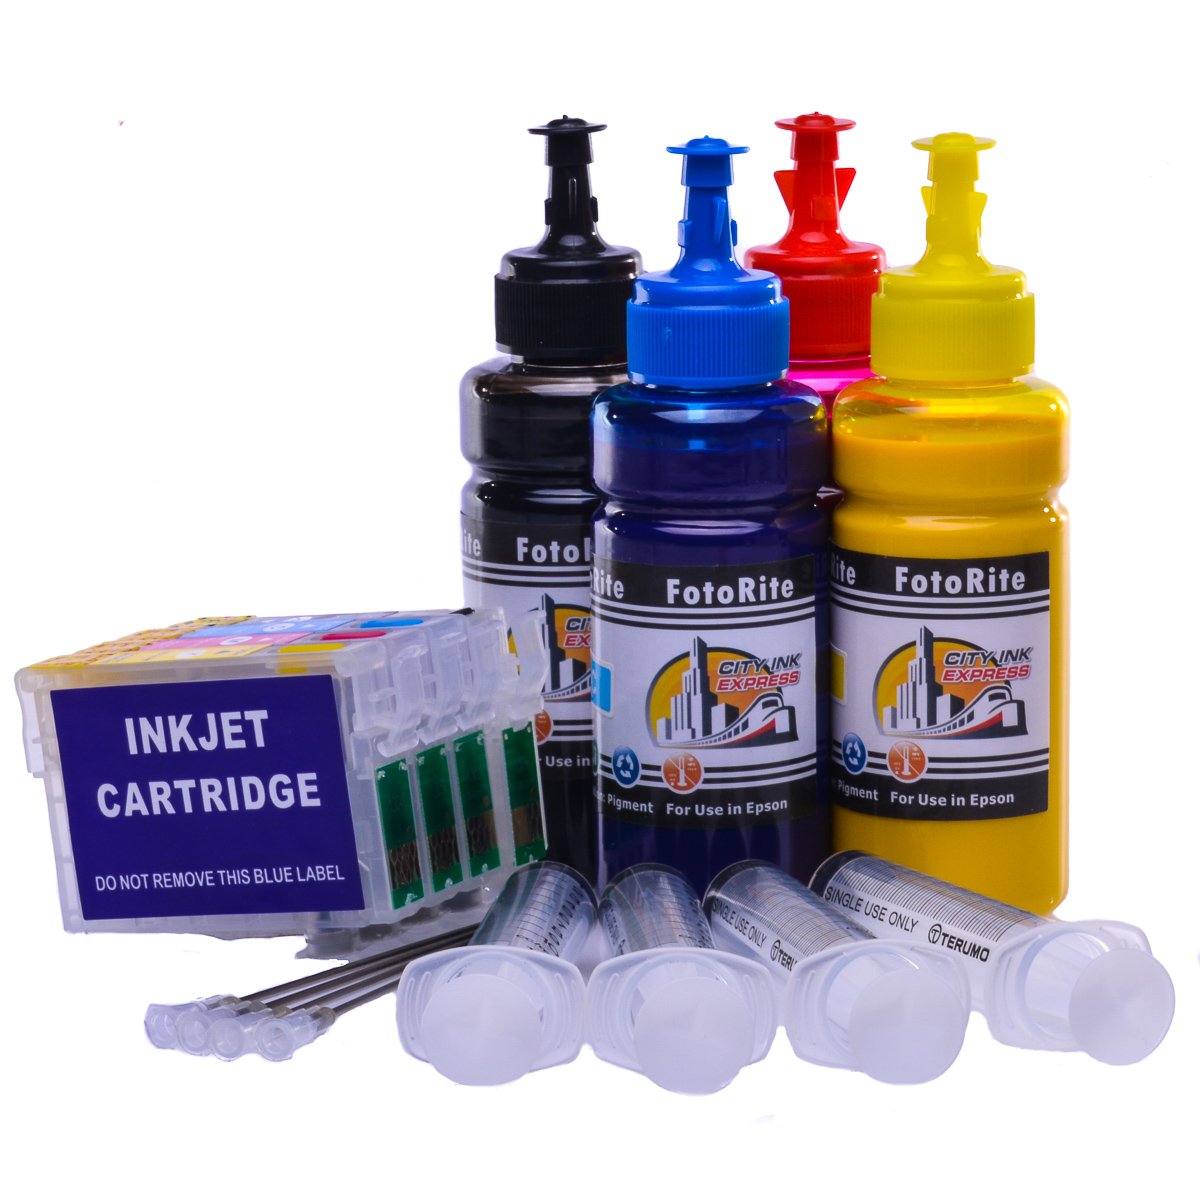 Refillable pigment Cheap printer cartridges for Epson Stylus SX110 C13T07154010 T0715 Multipack